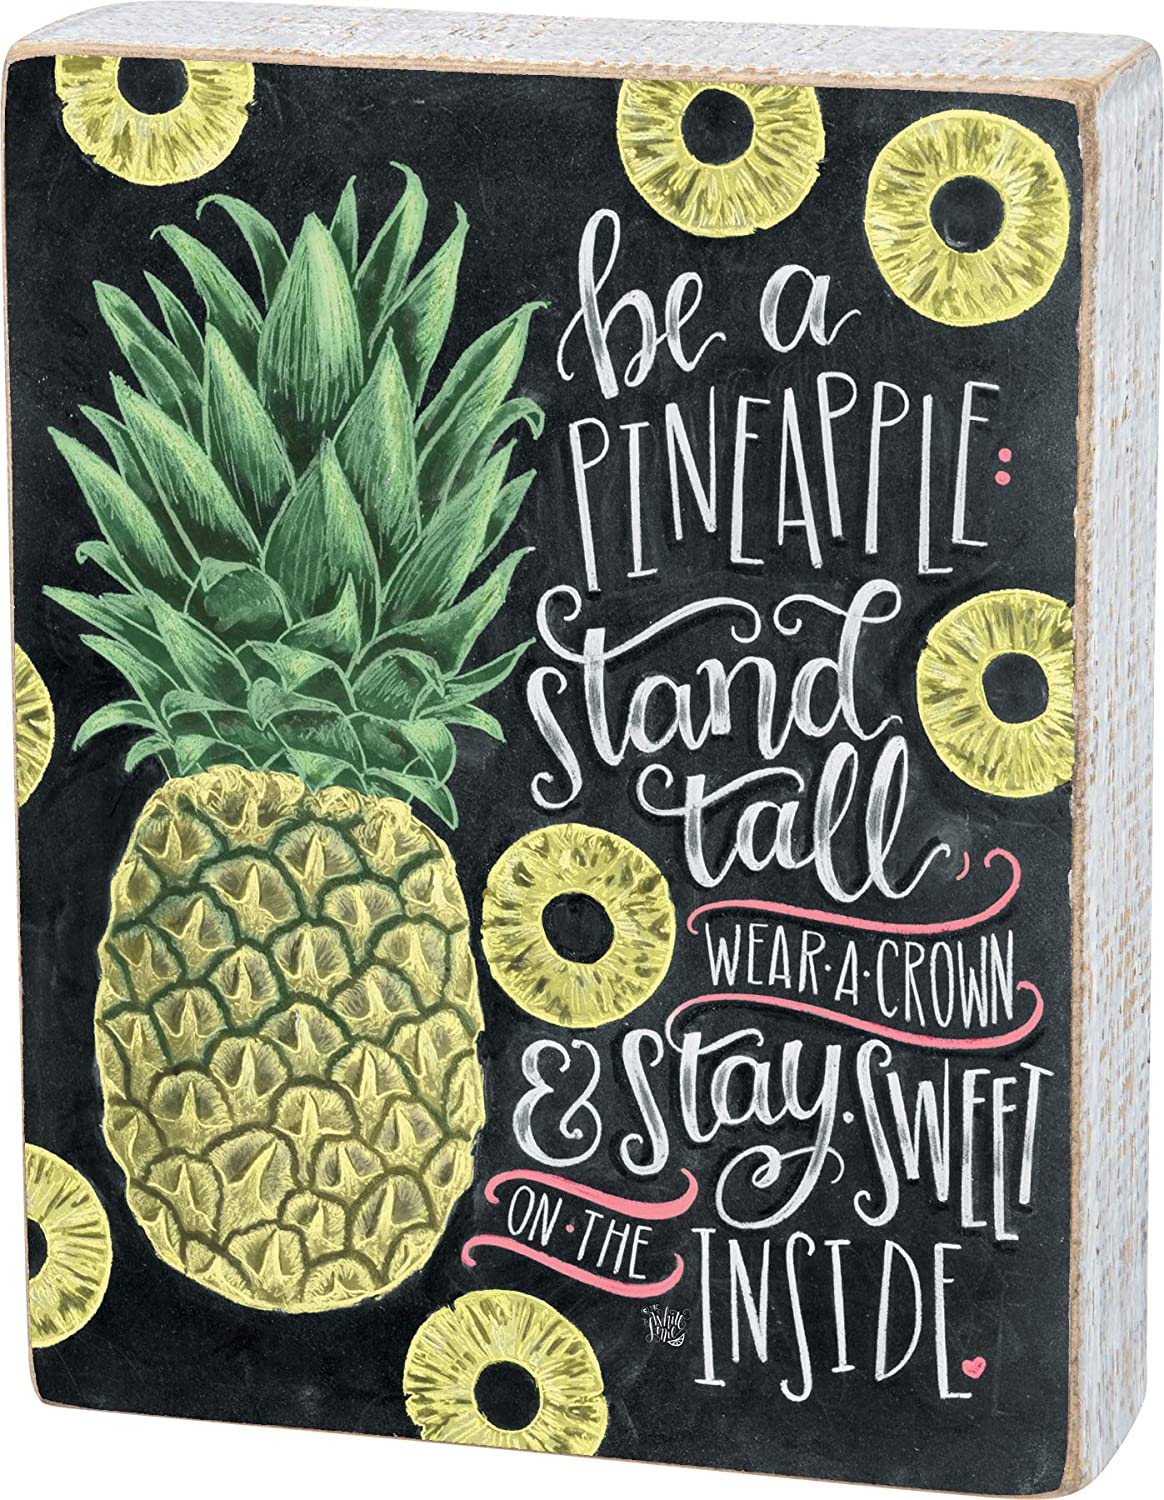 Primitives by Kathy 34280 Chalk Art Box Sign, 6 x 7.5-Inches, Be a Pineapple Stand Tall